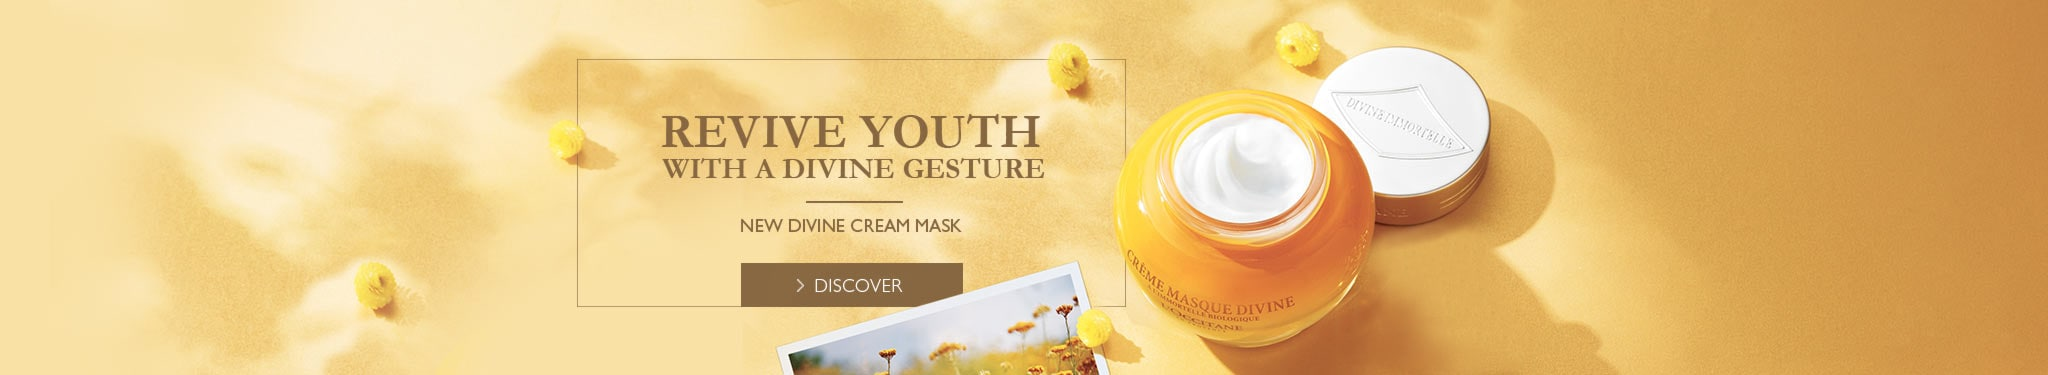 Revive Youth With A Divine Gesture